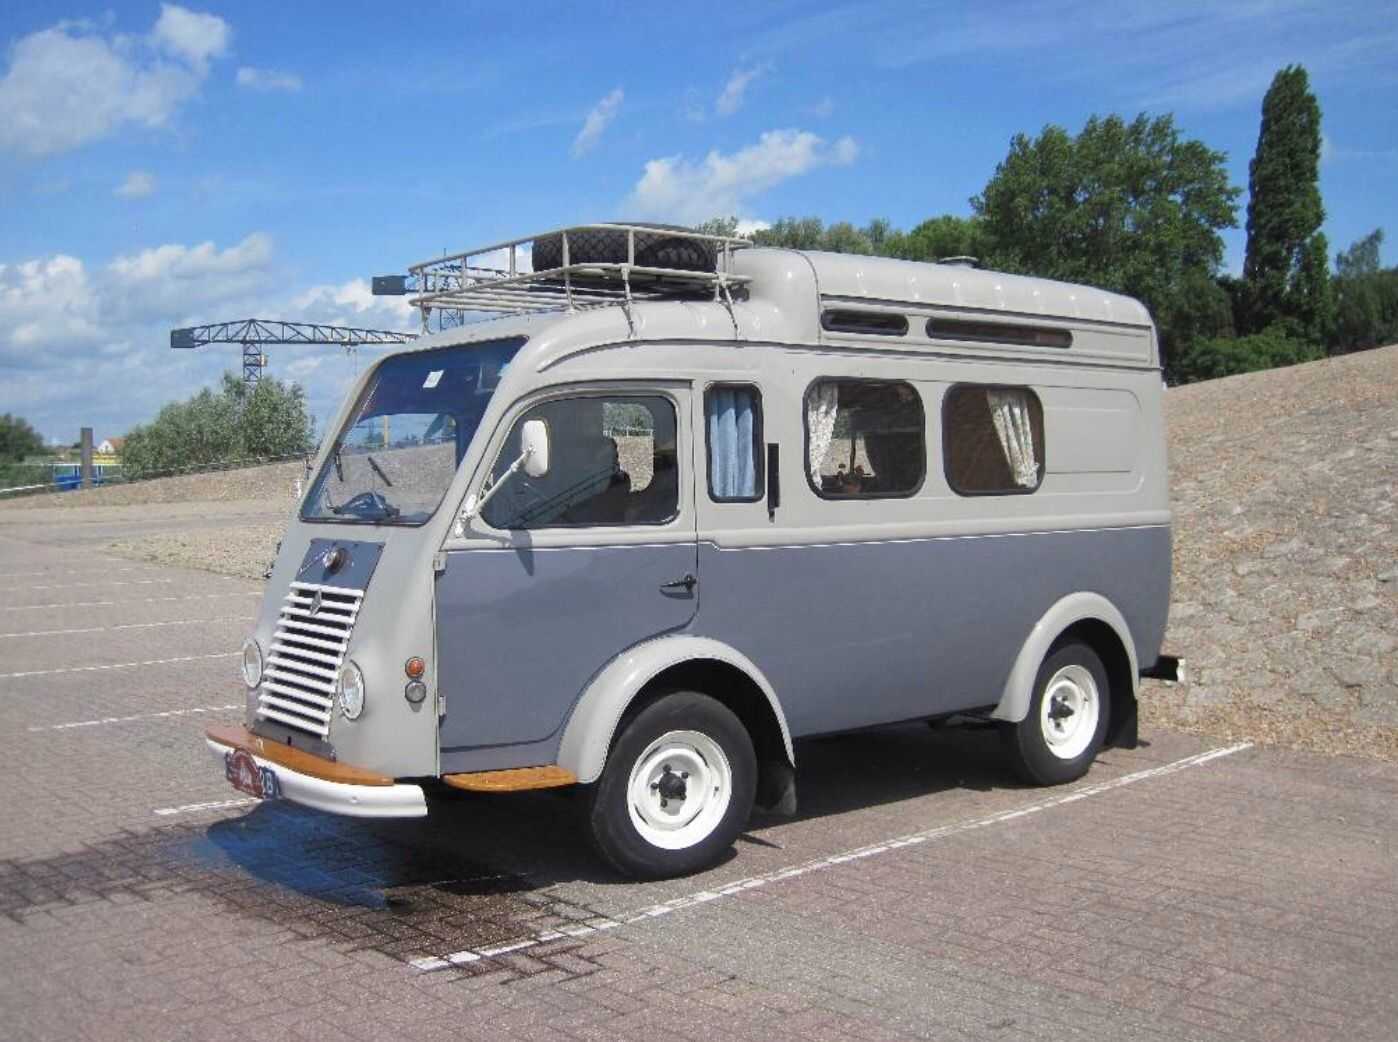 Kia camping car to bad the us will never let these be imported kia classics concepts pinterest cars rv and camping